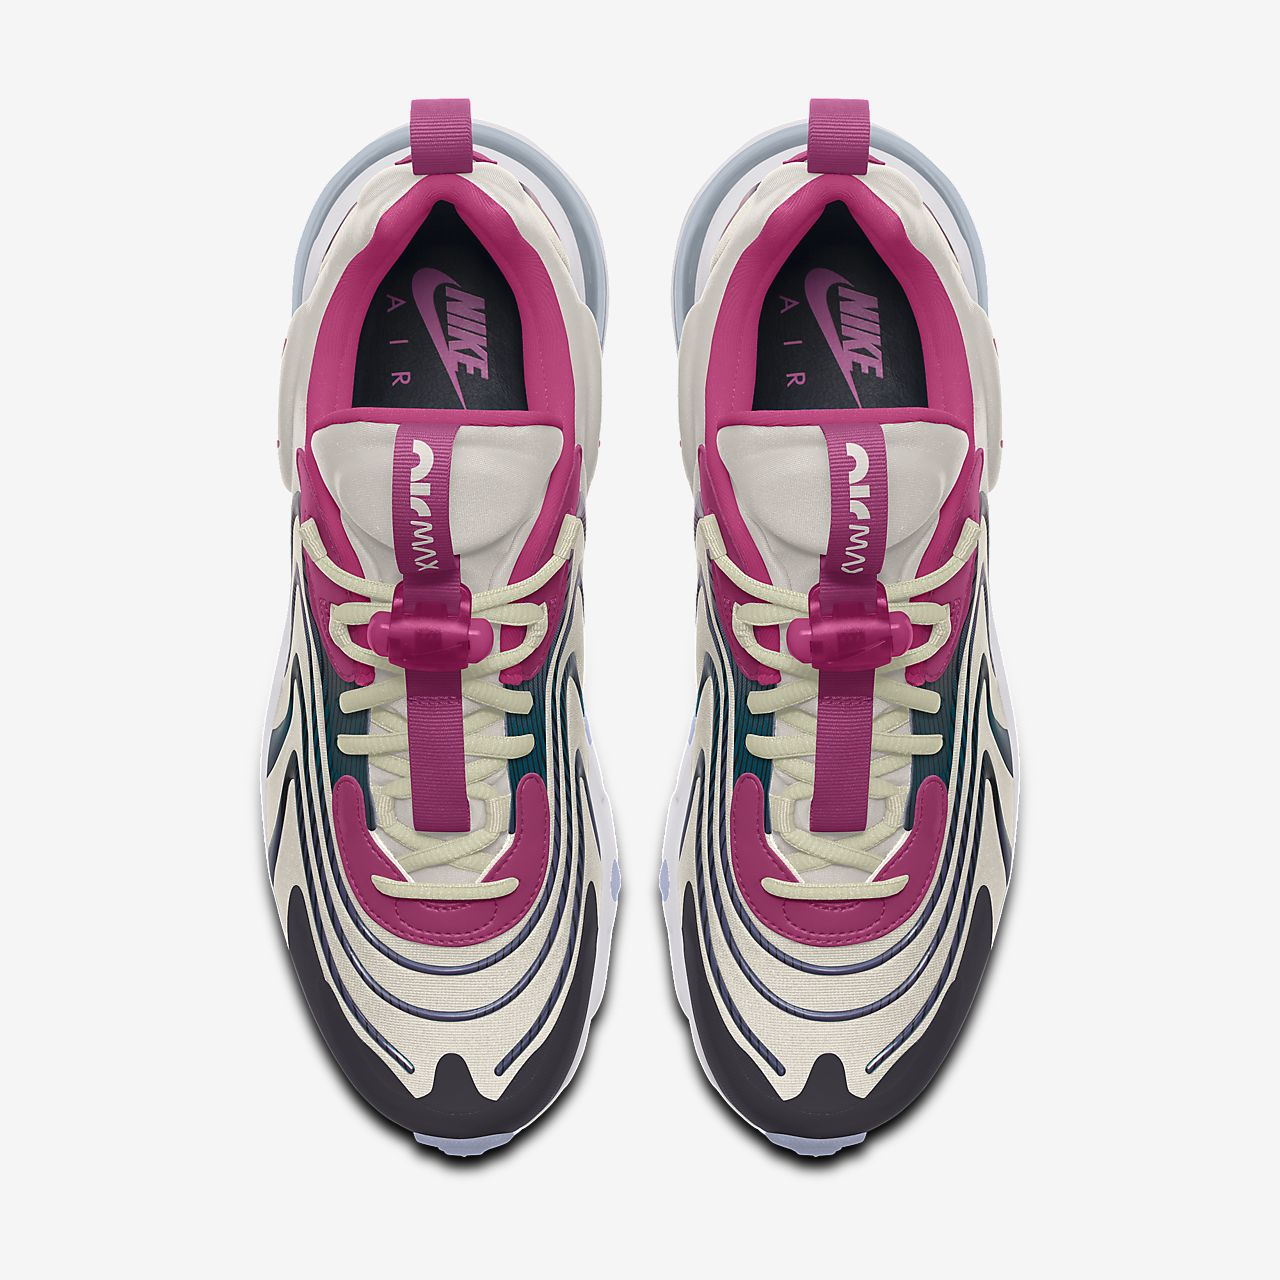 Nike Air Max 270 React ENG Premium By You Custom Lifestyle Shoe